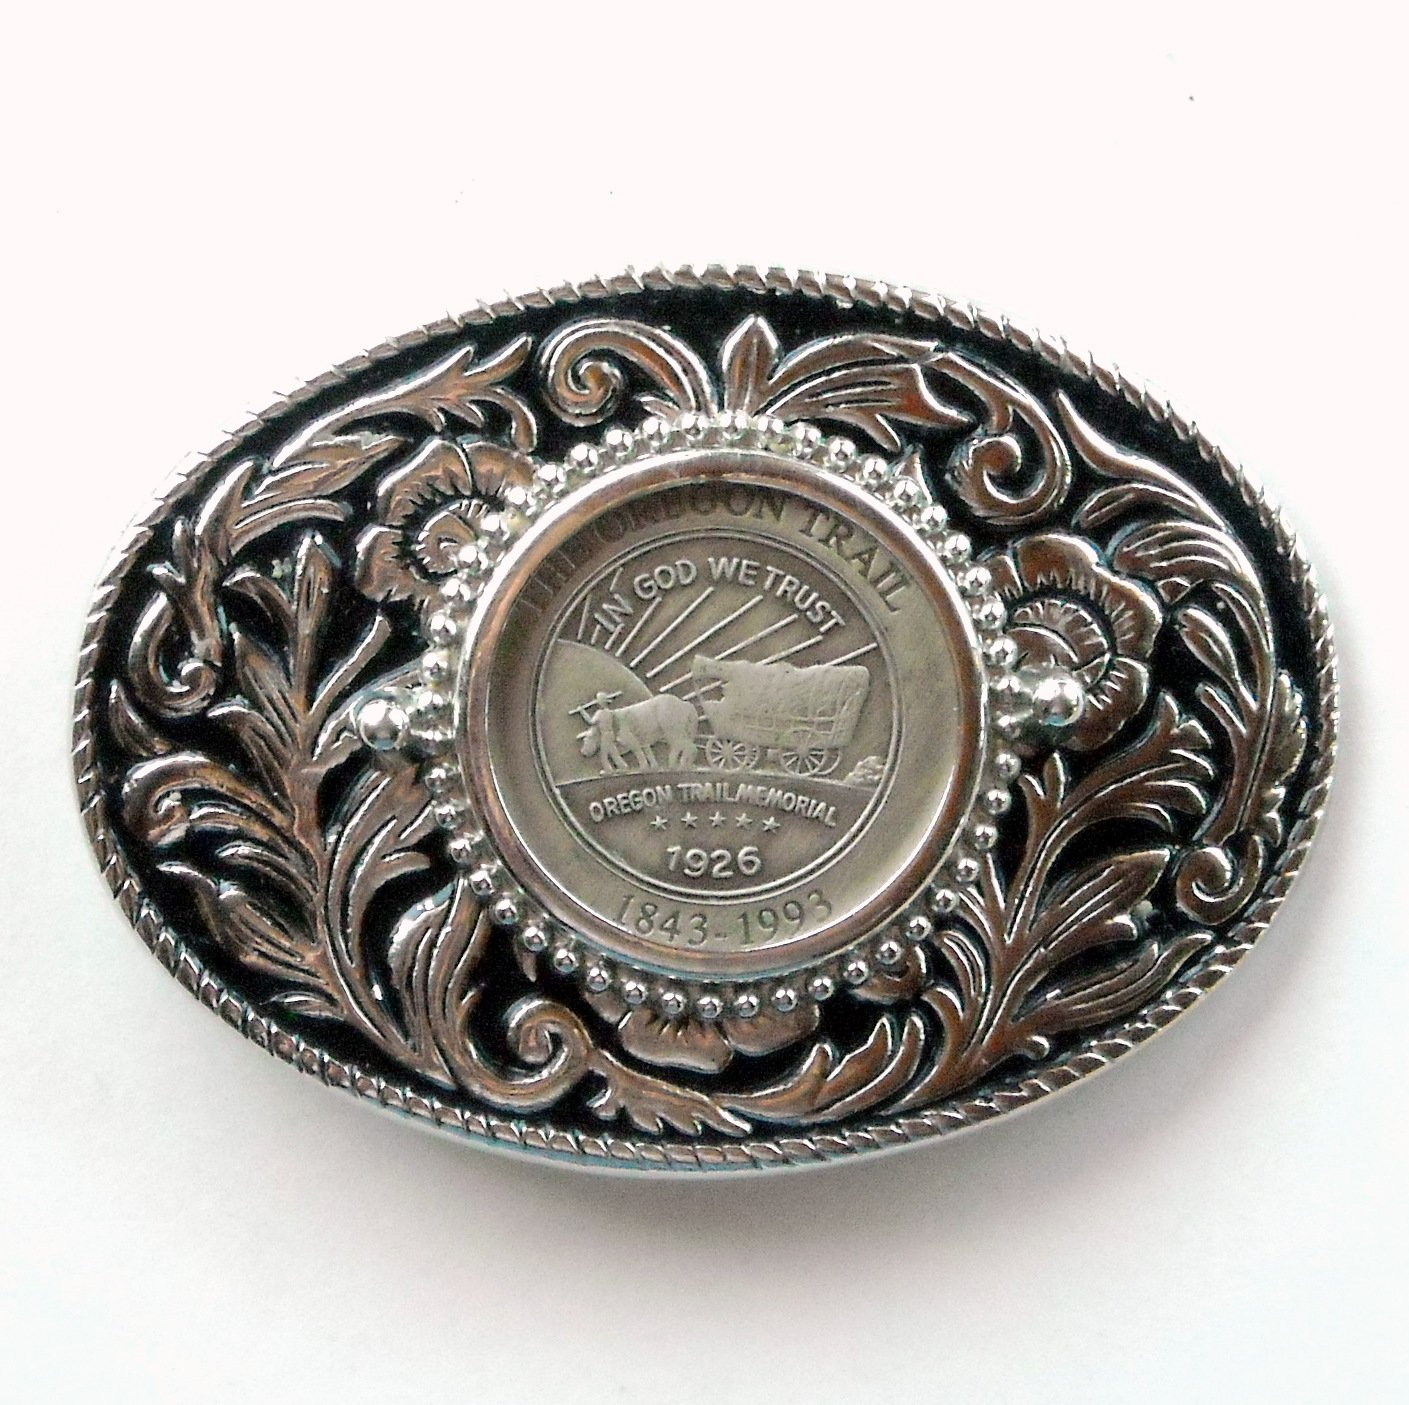 The Oregon Trail Silver color Made In USA belt buckle